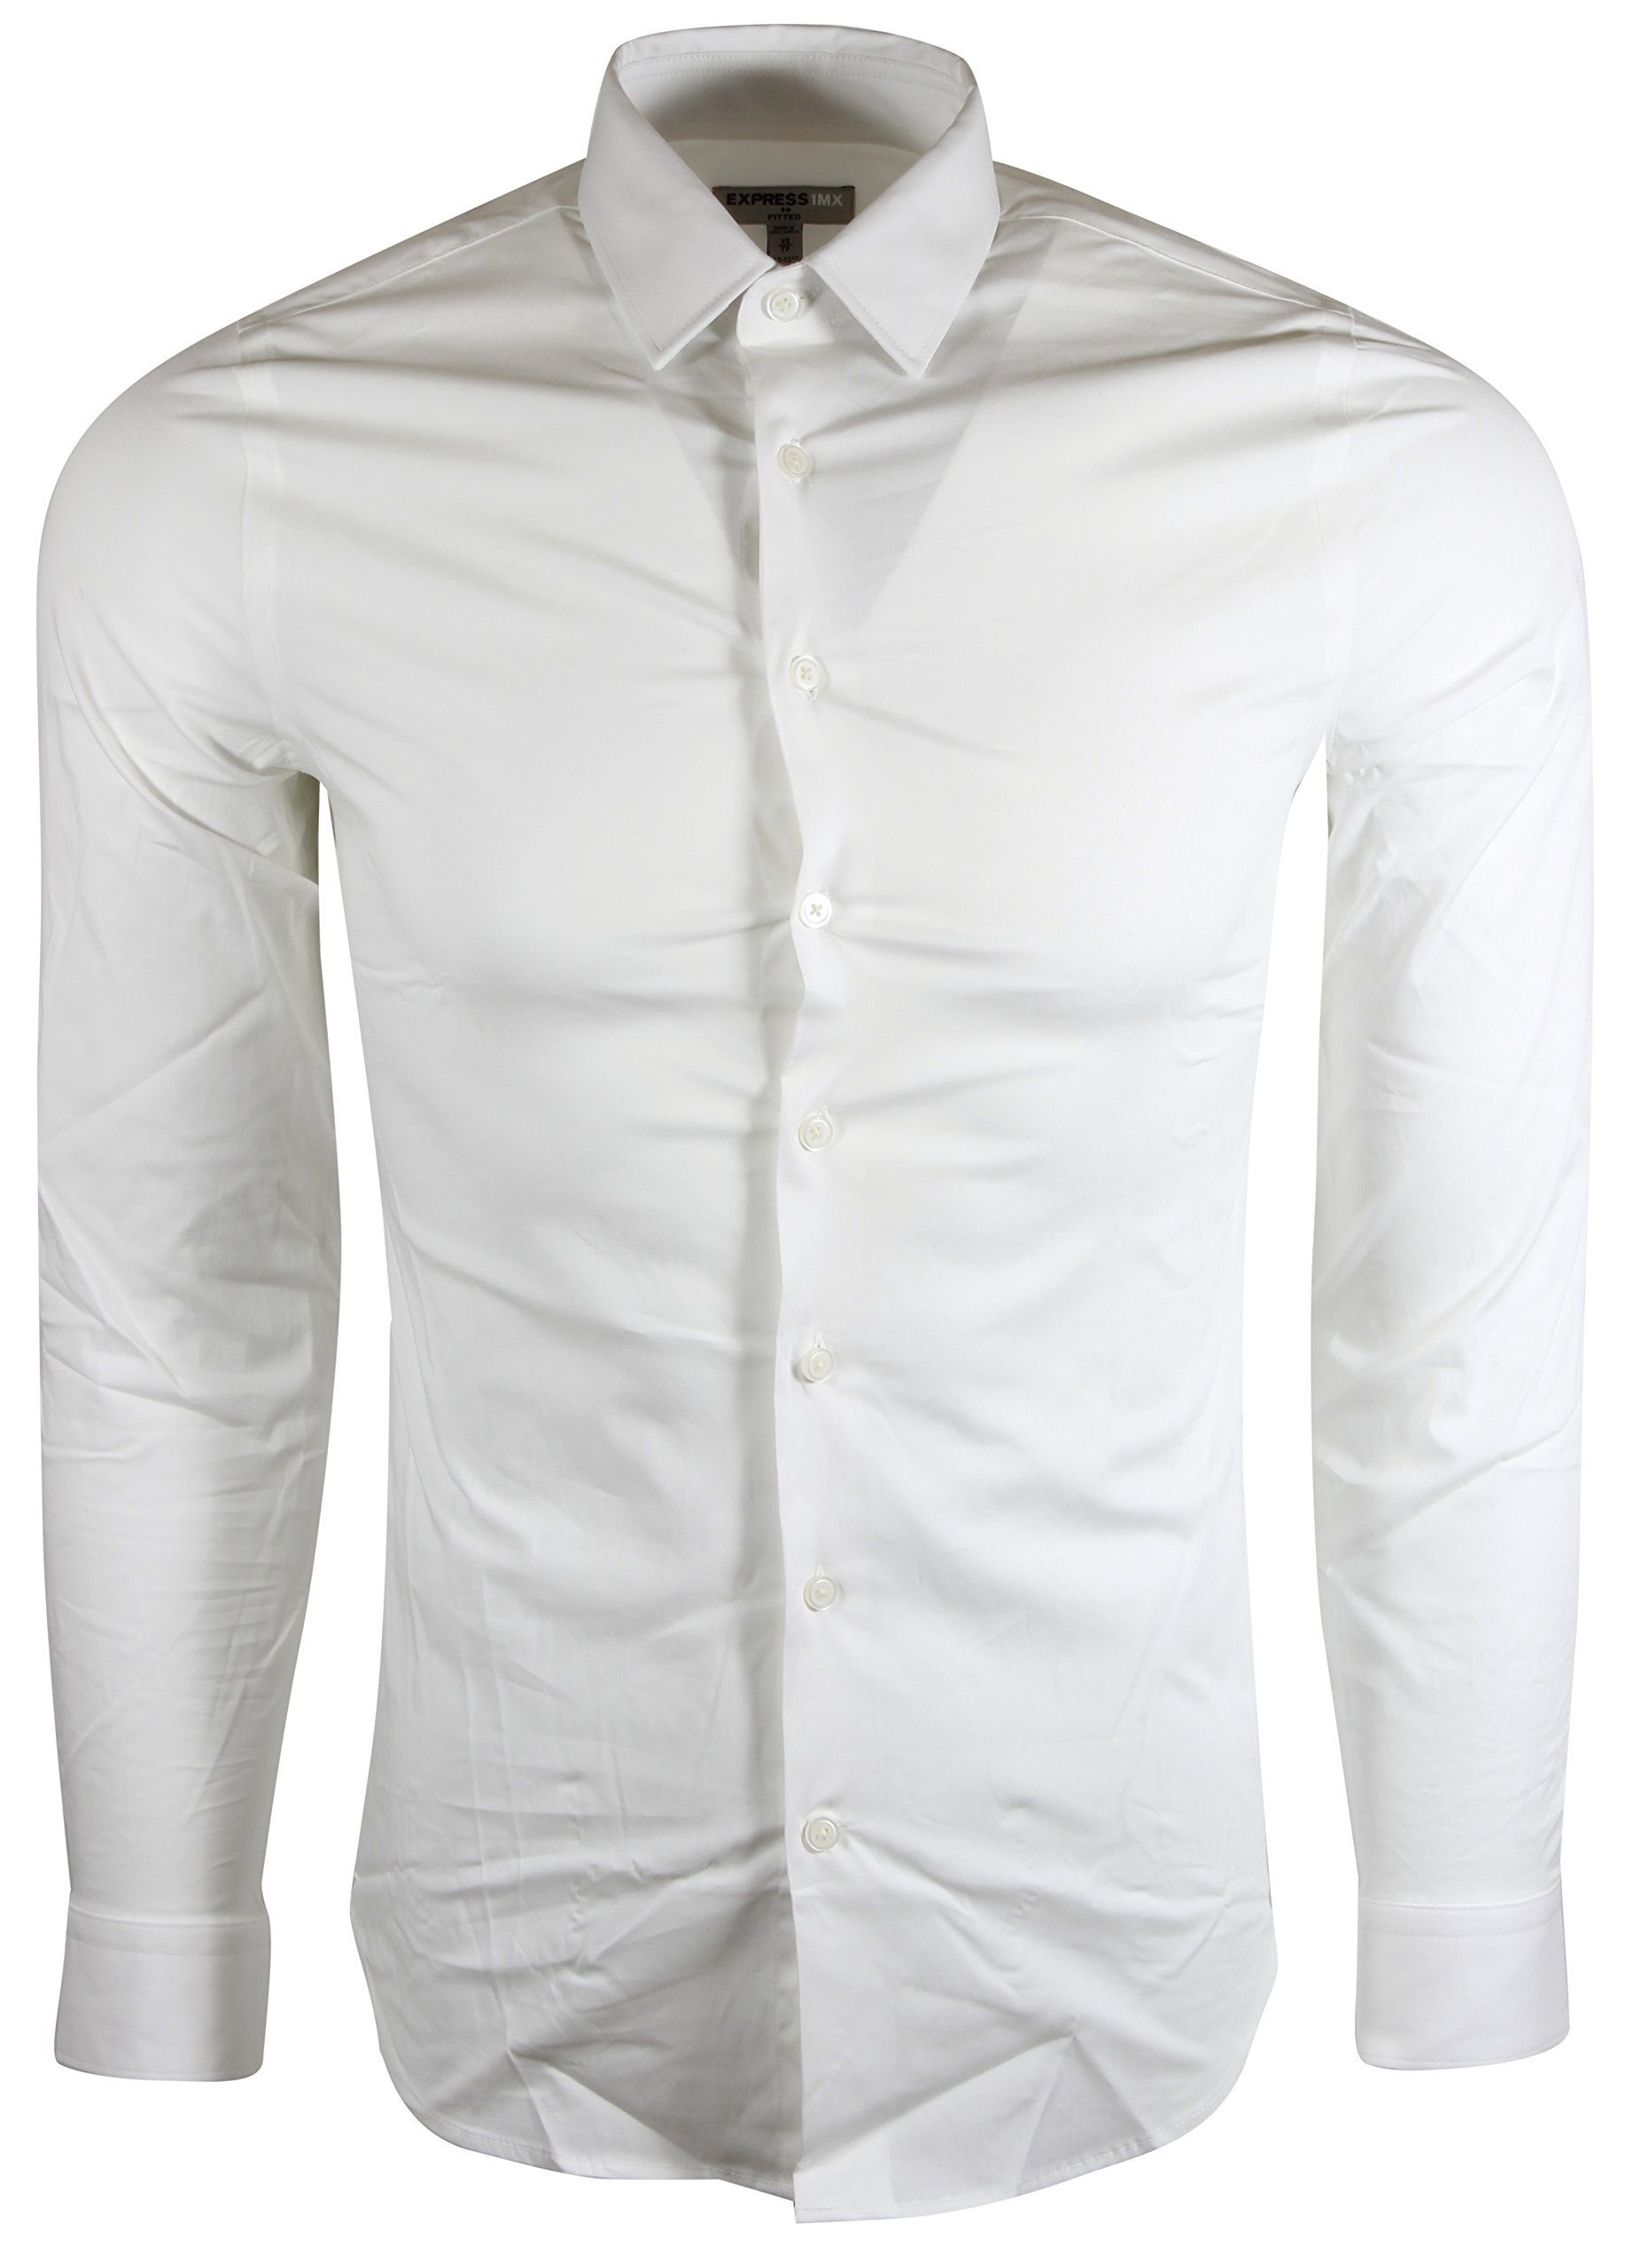 18c6f32bc11 EXPRESS 1MX White Long Sleeve Button Down Shirt (Fitted .